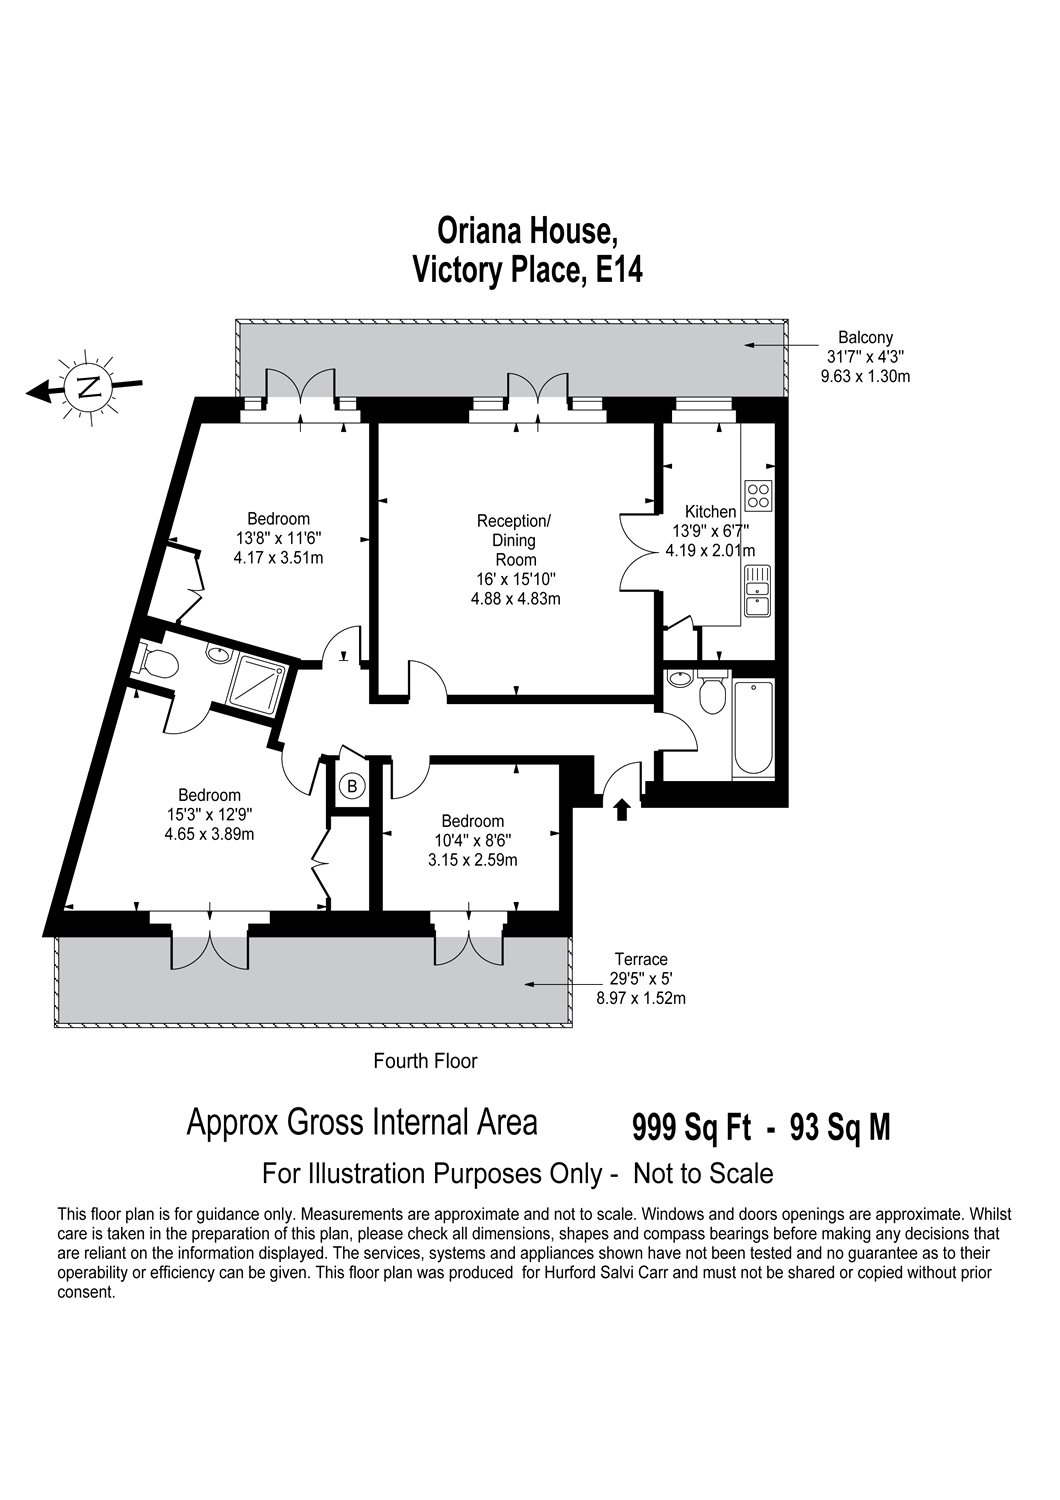 Oriana House, Victory Place, E14 floorplan